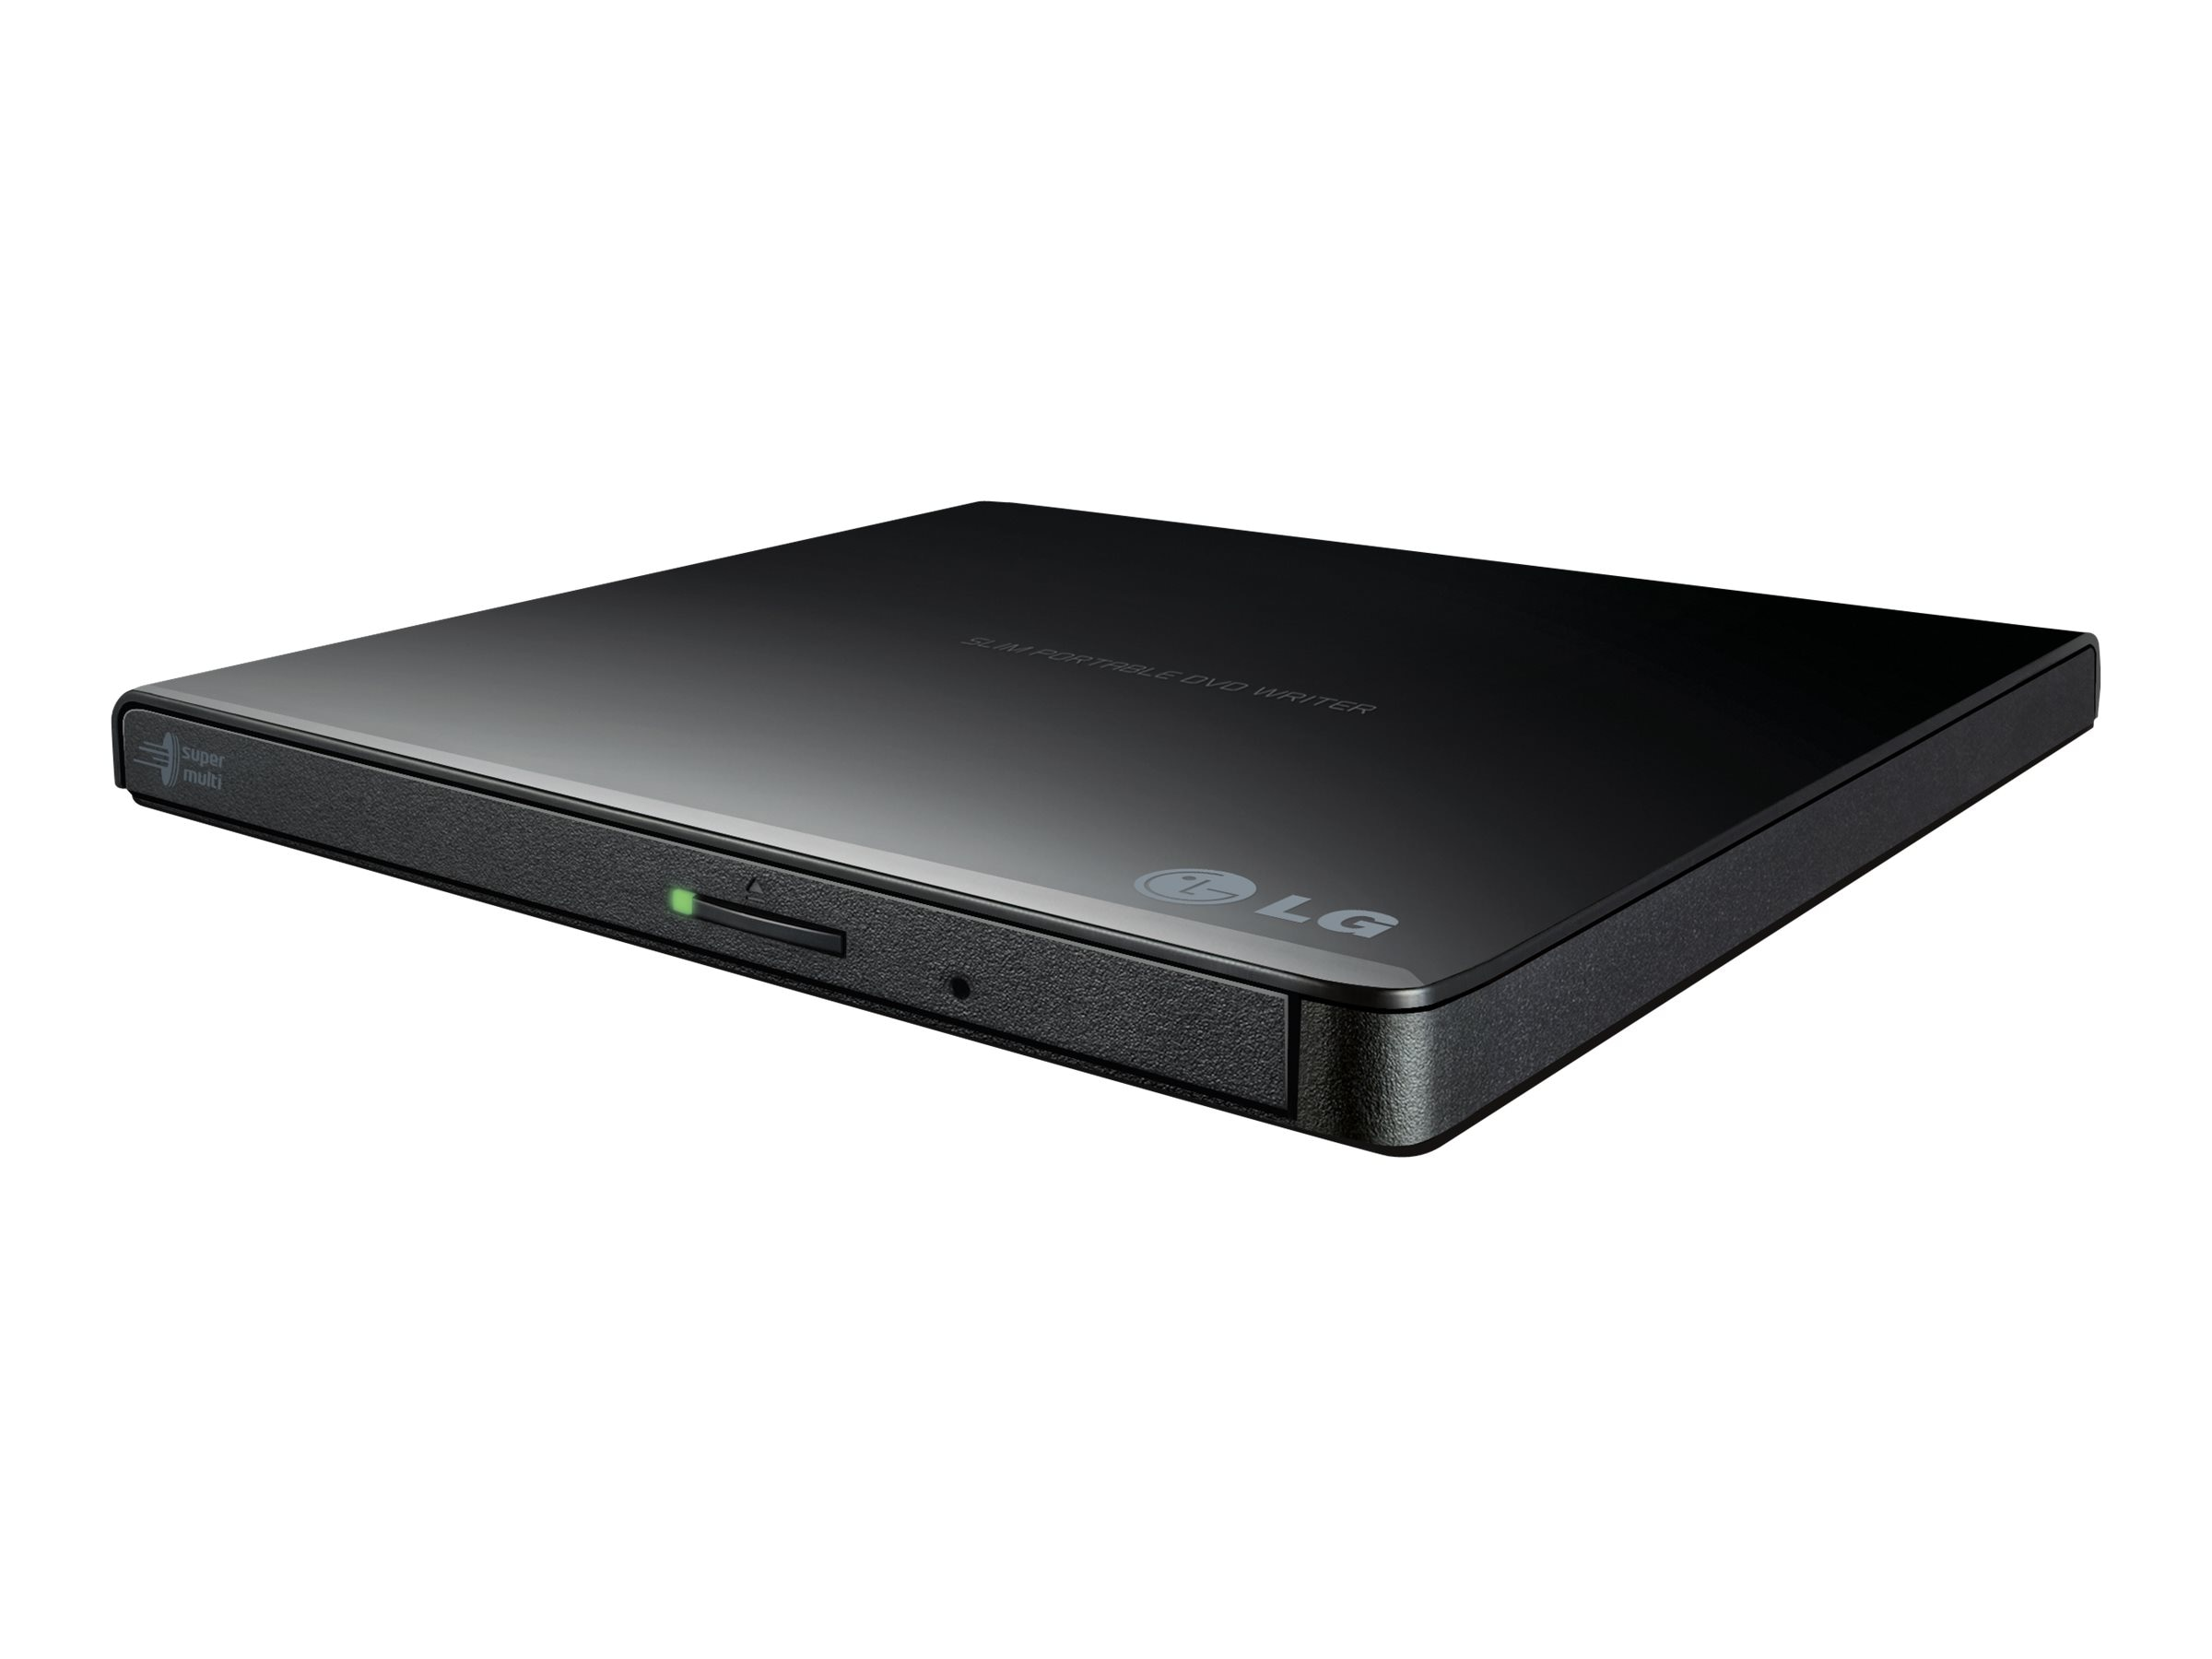 LG 8X Ultra-Slim Portable DVD Burner & Drive w  M-Disc Support, GP65NB60, 17922950, DVD Drives - External